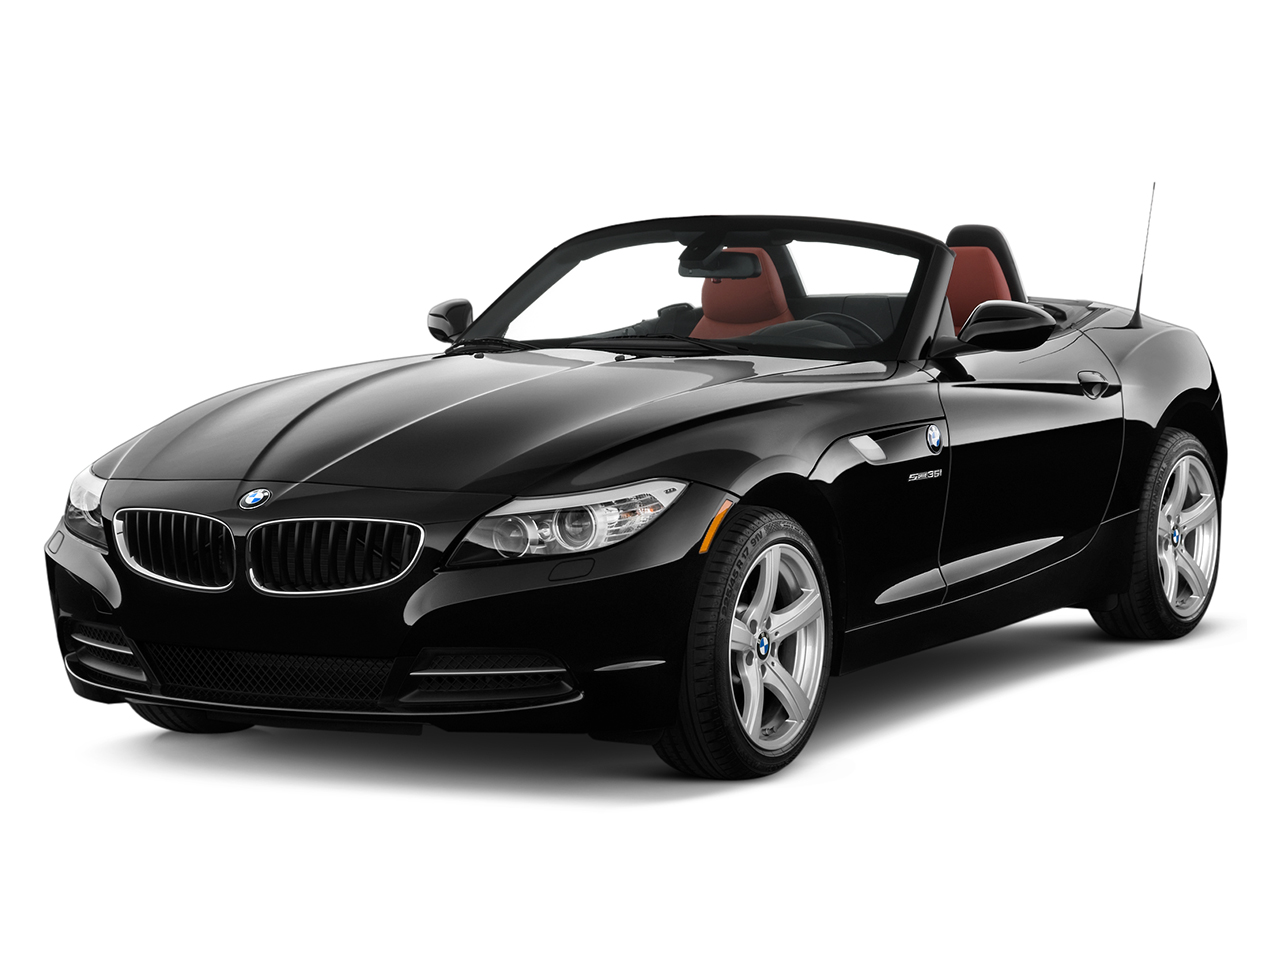 2018 Bmw Z4 Roadster Prices In Saudi Arabia Gulf Specs